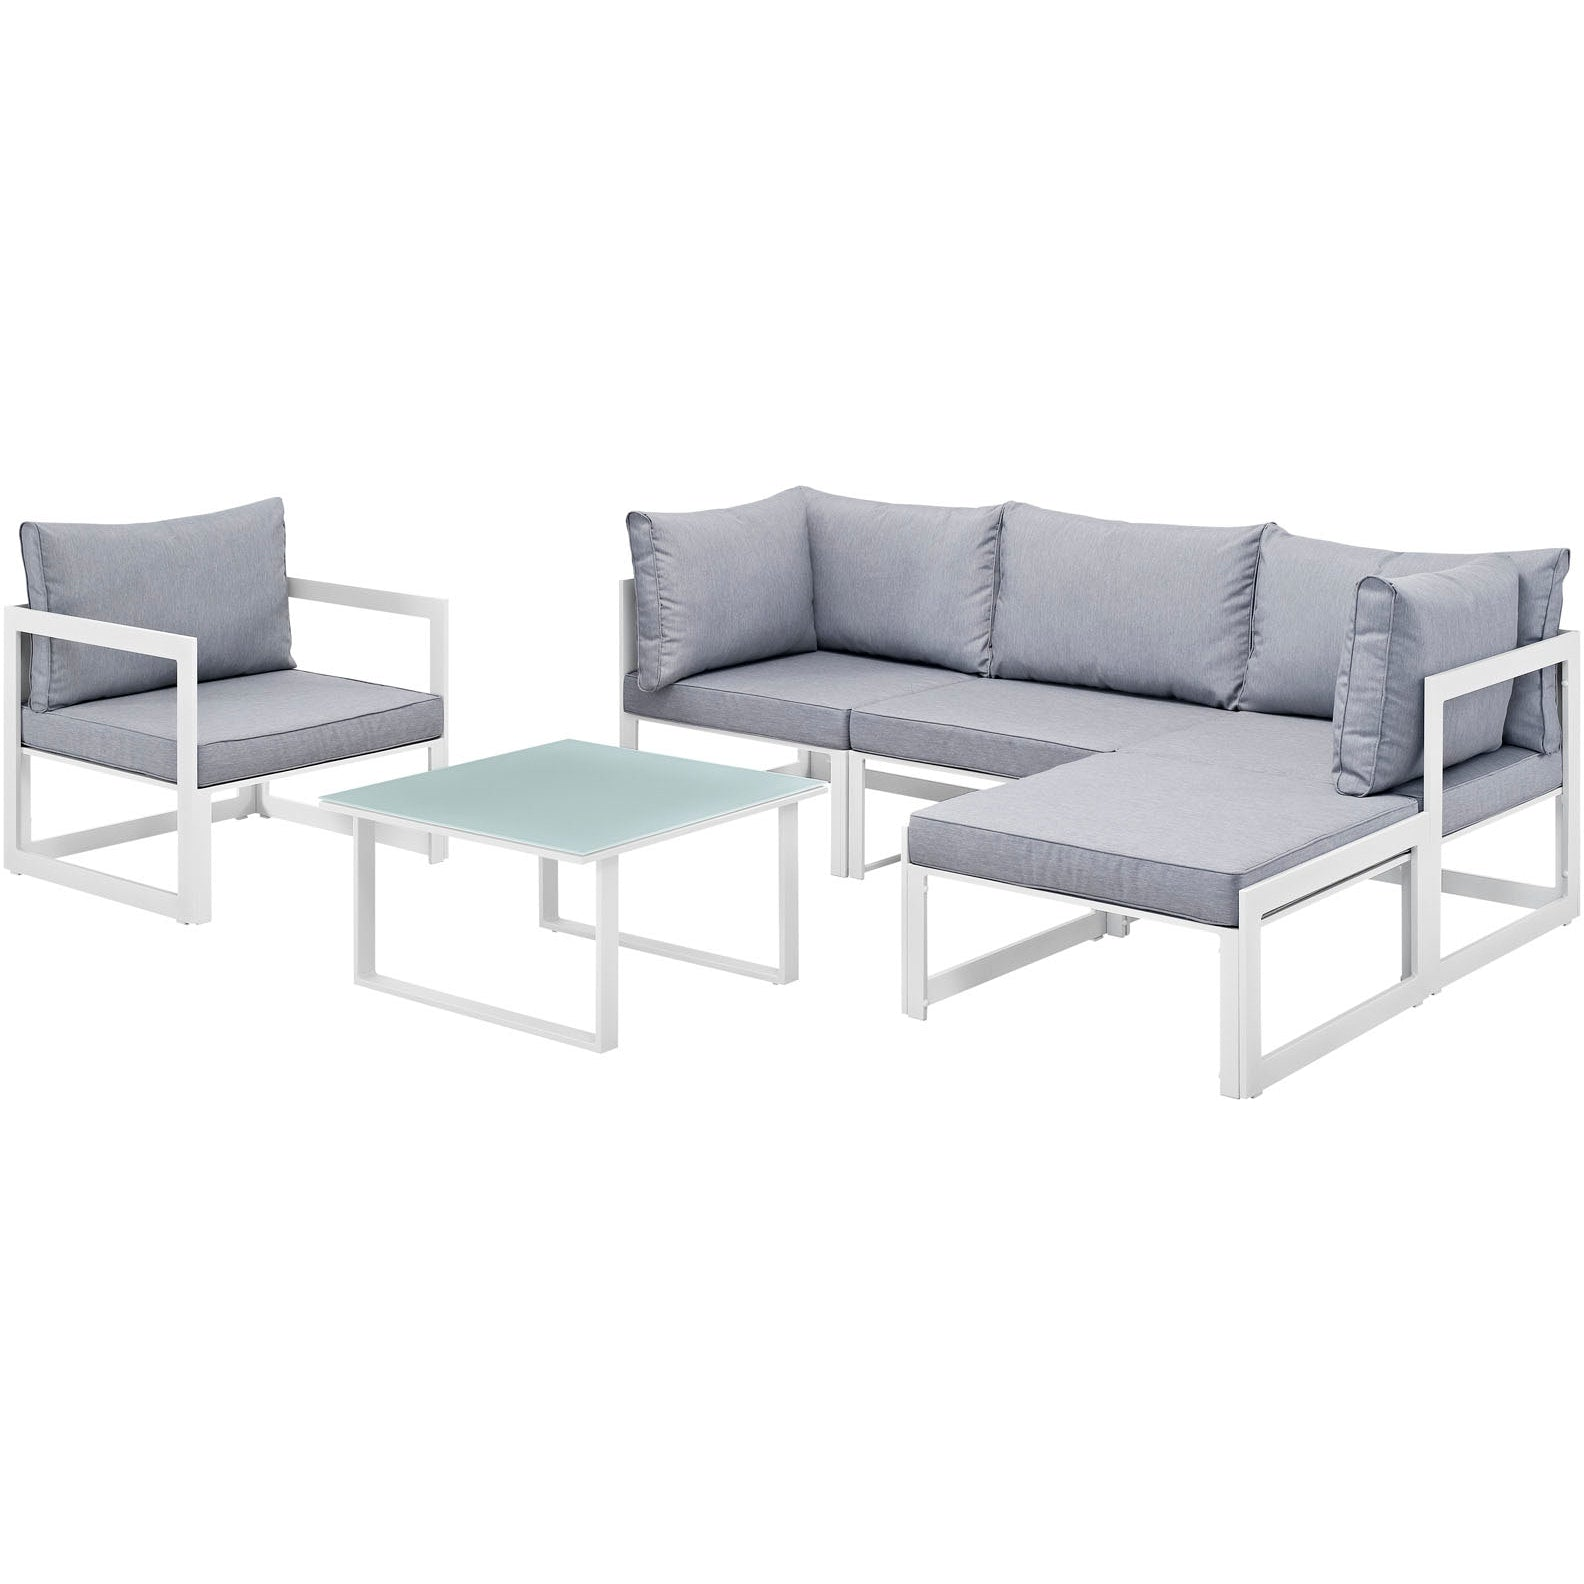 Fortuna 6 Piece Outdoor Patio Sectional Sofa Set - White Gray